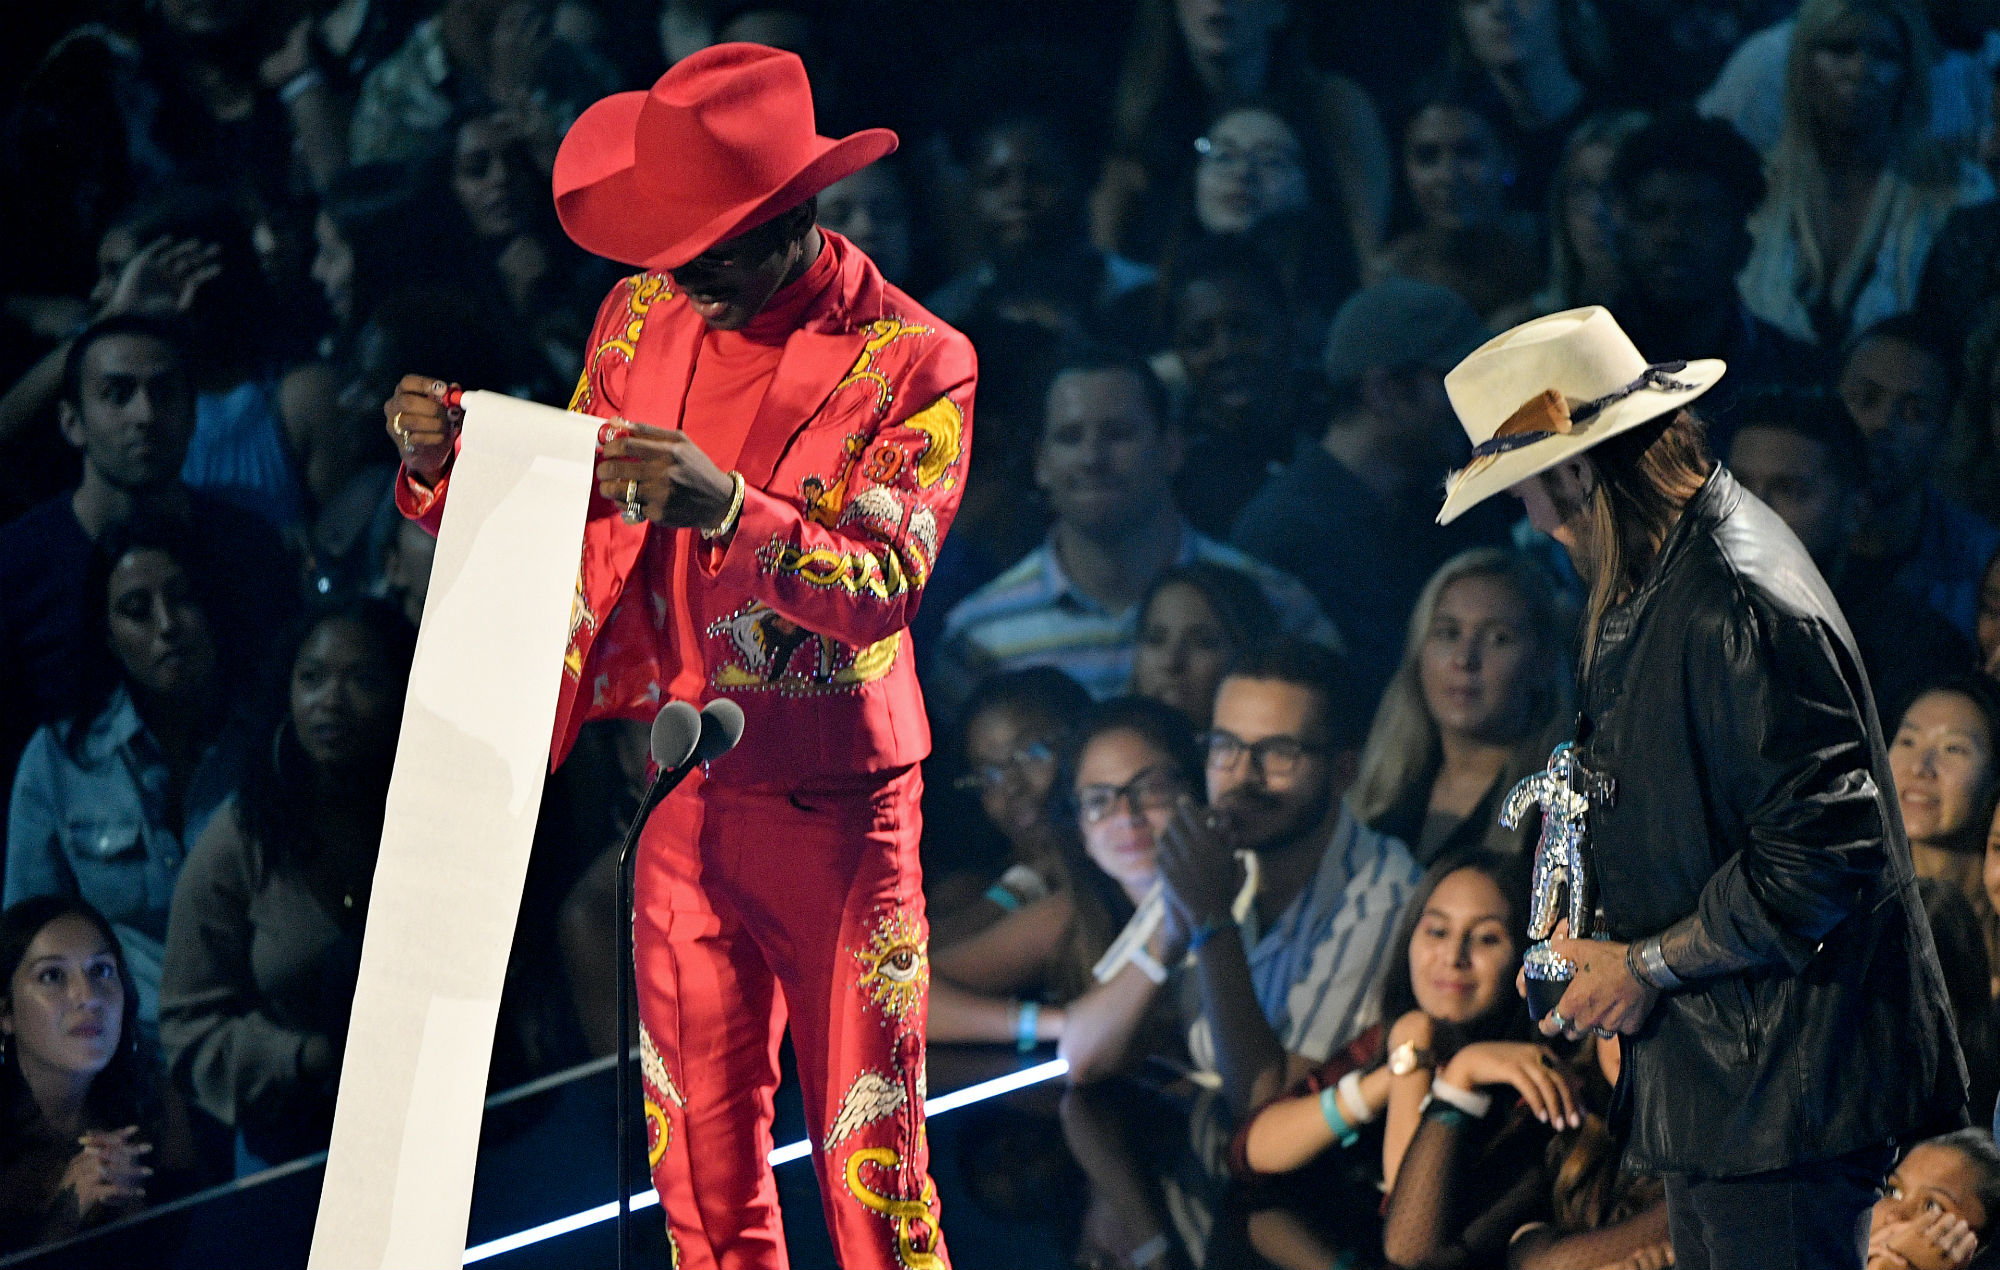 Lil Nas X reads out his acceptance speech for winning Song of the Year at the MTV VMAs 2019